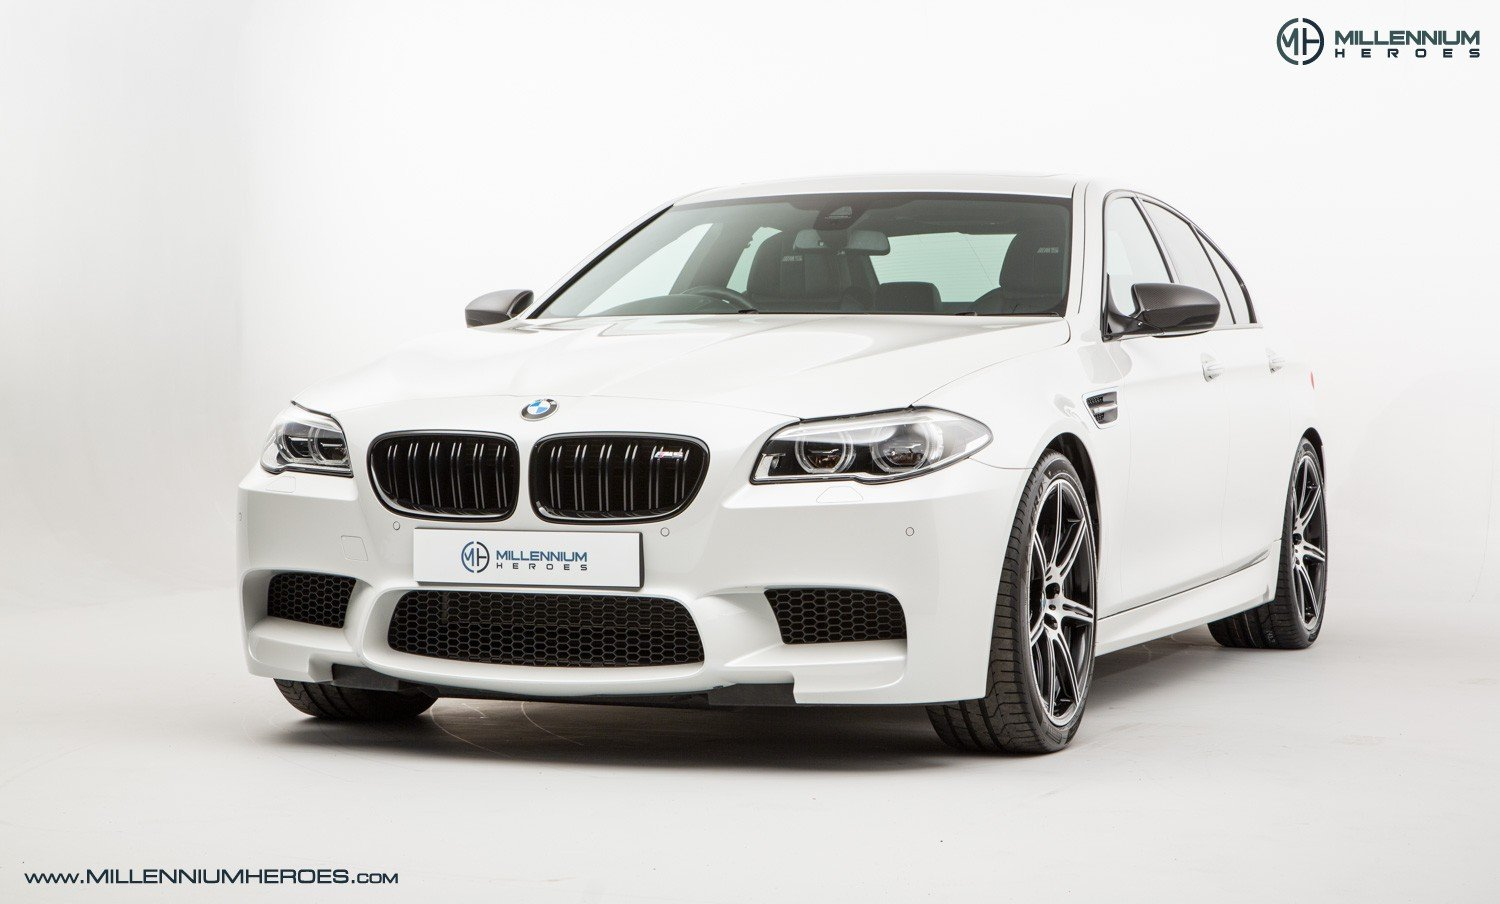 2016 Bmw M5 Bmw M5 Competition Edition 1 Of 200 Bmw 5 Year Service Pack 2 Owner 600 Hp Classic Driver Market